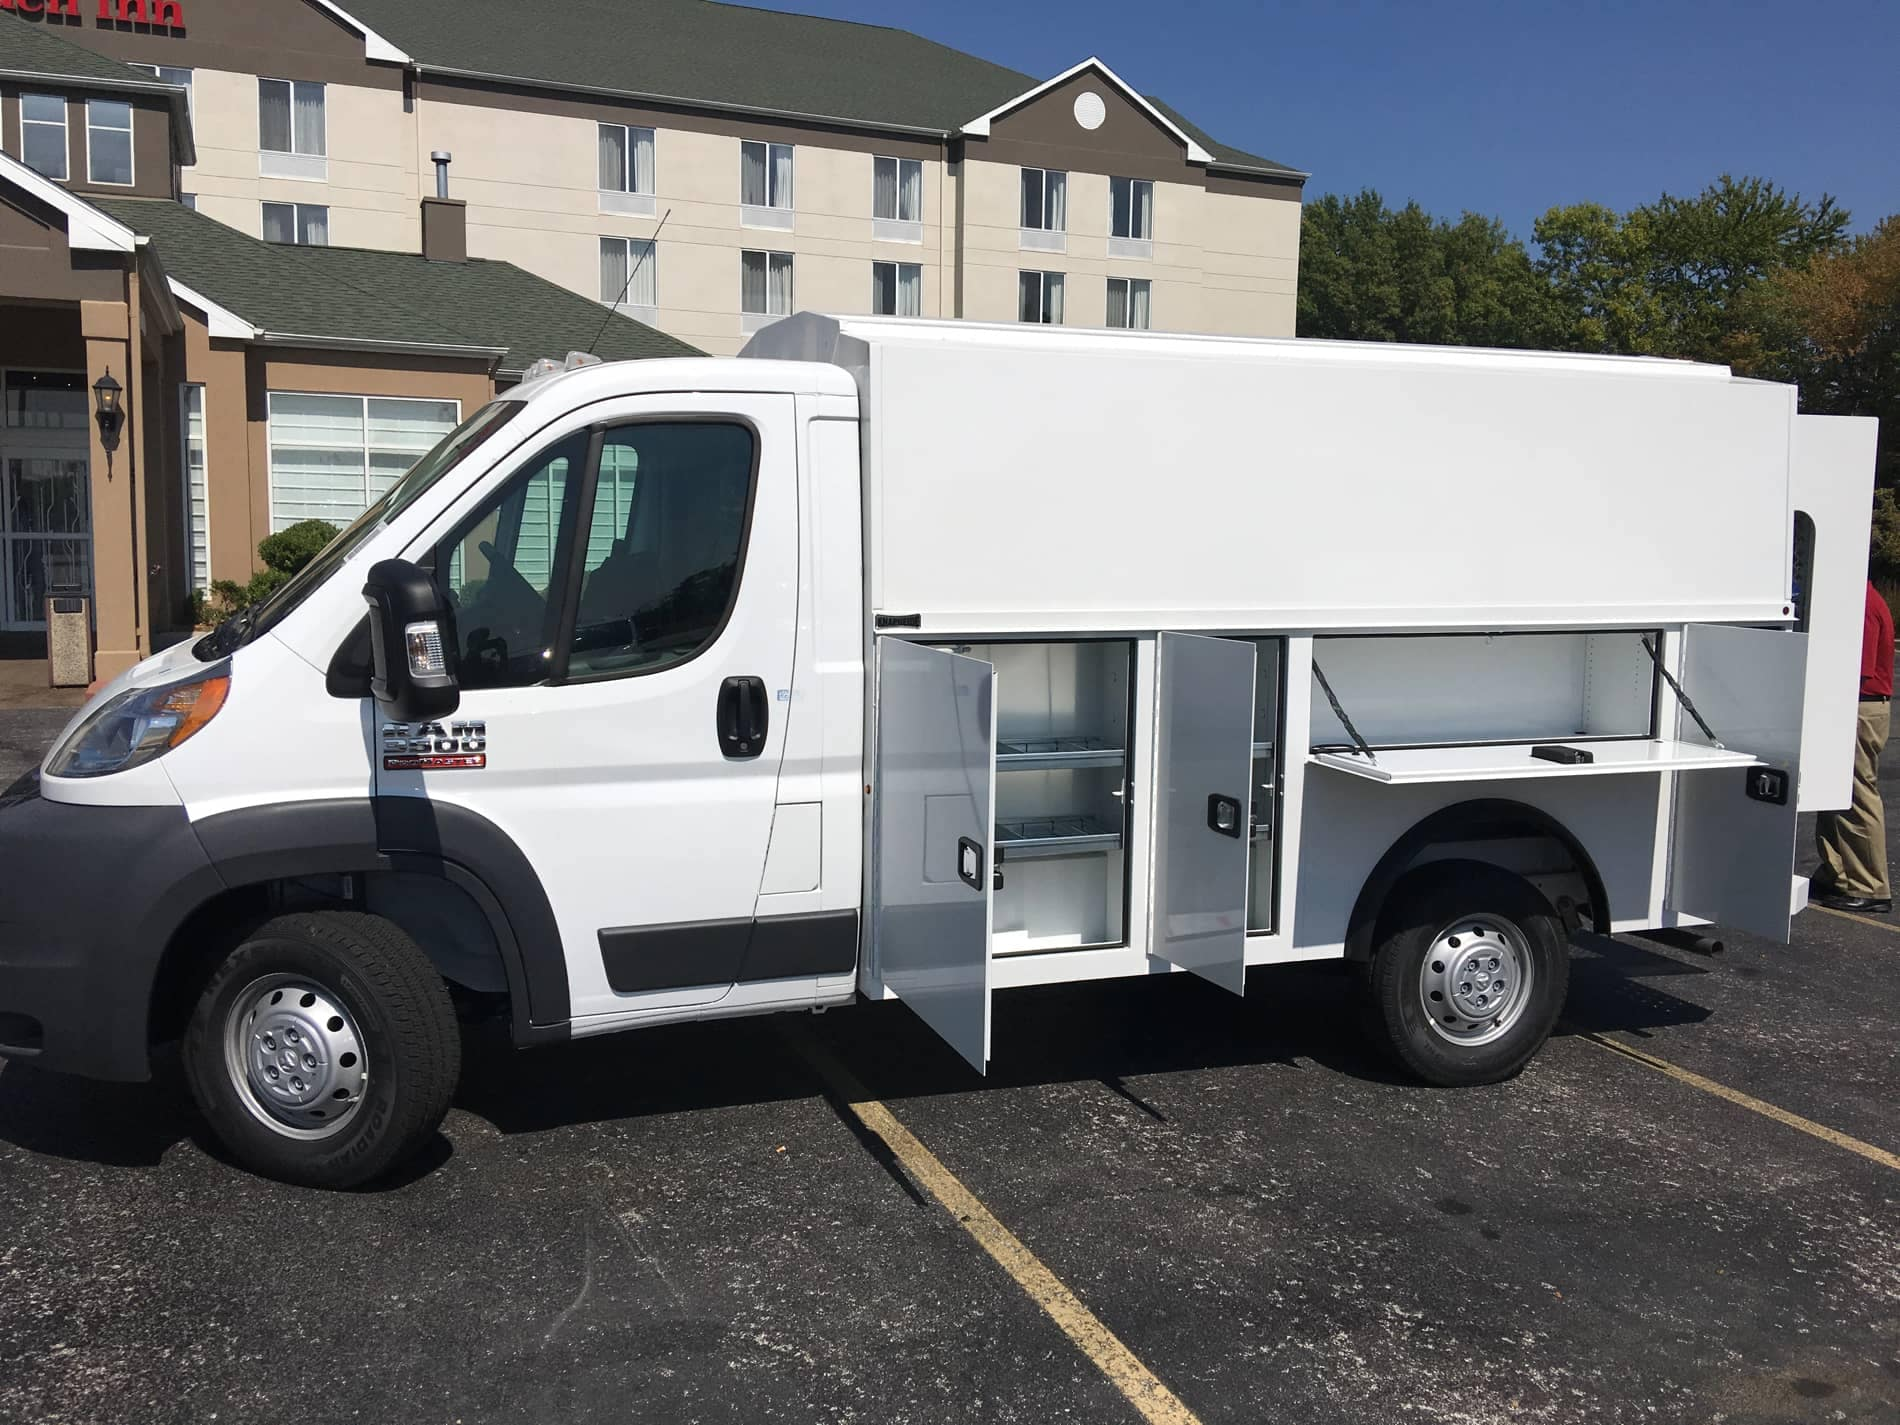 Van with upfit kit and shelves on side